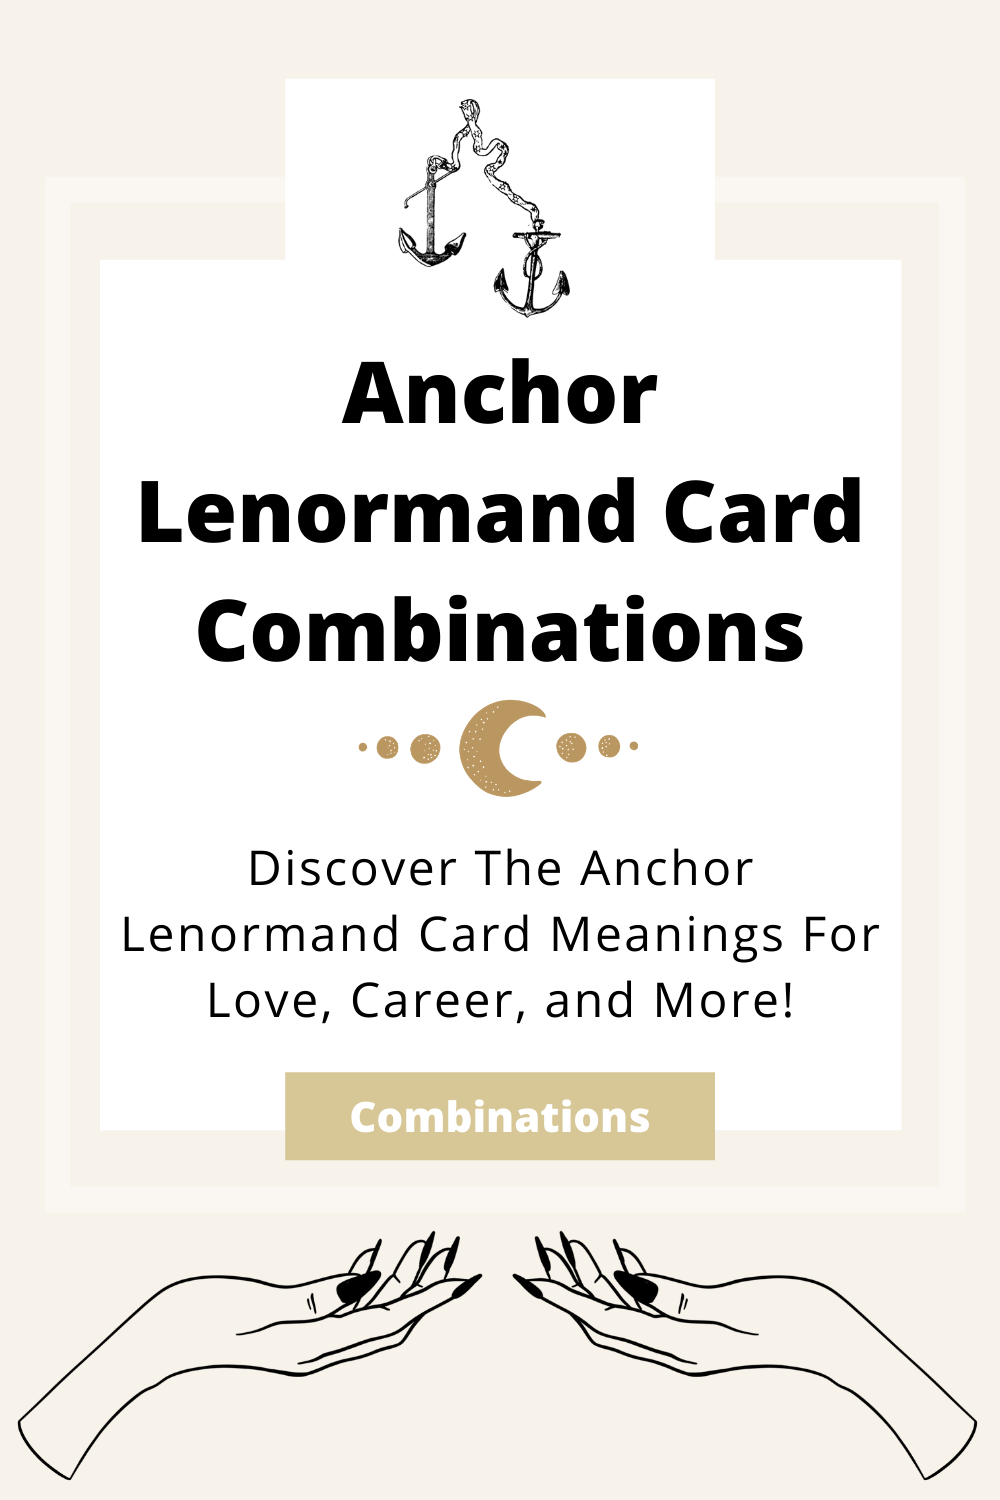 Lenormand Anchor Combinations